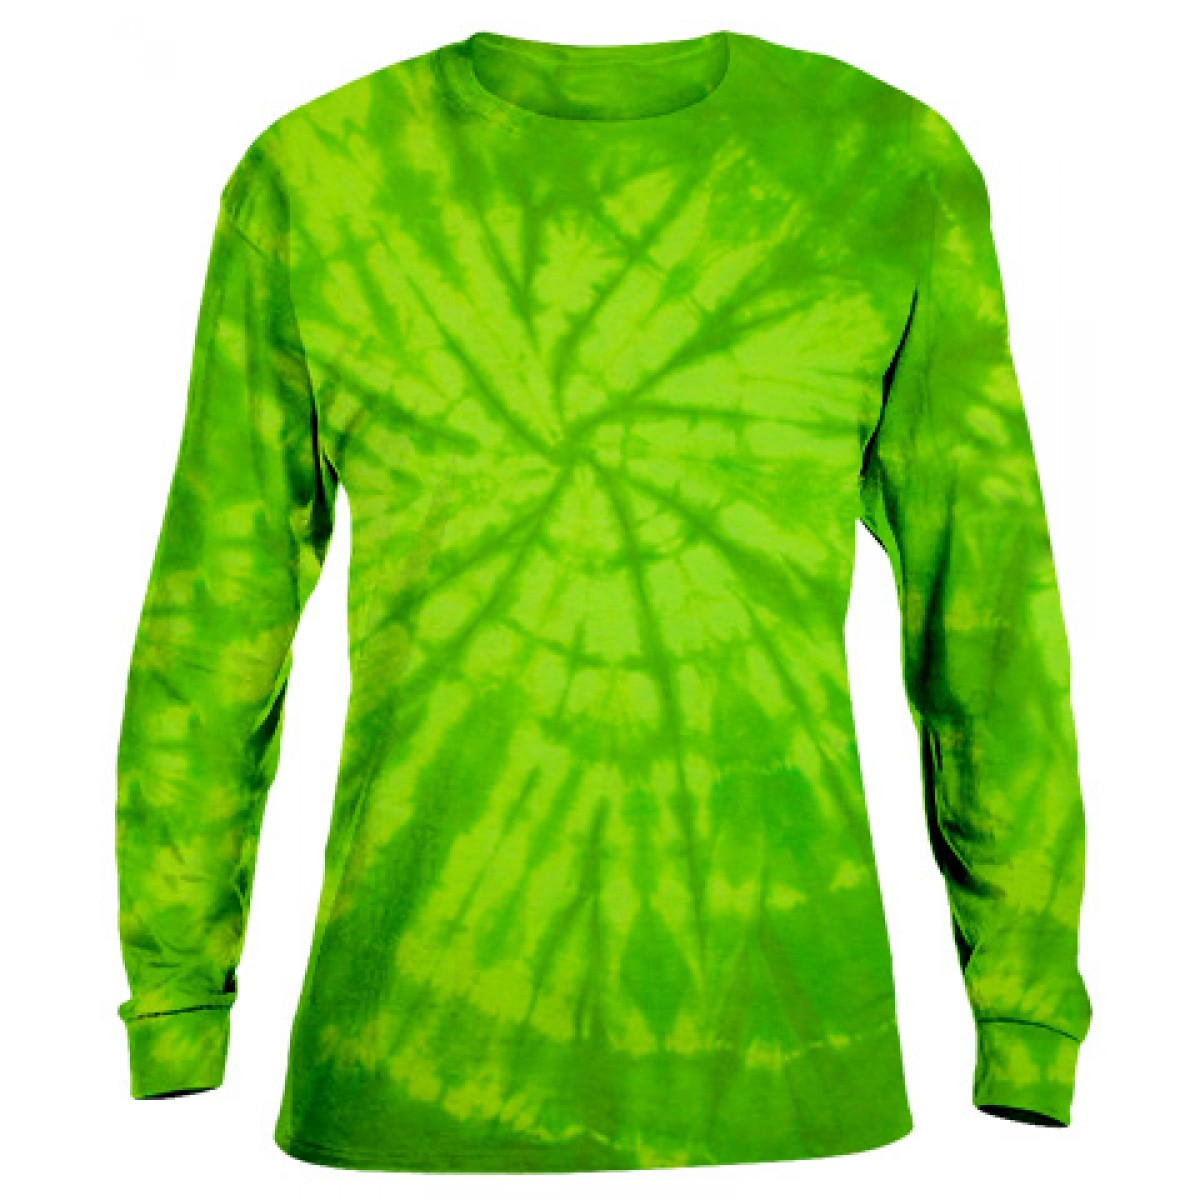 Tie-Dye Long Sleeve Shirt -Lime Green-3XL